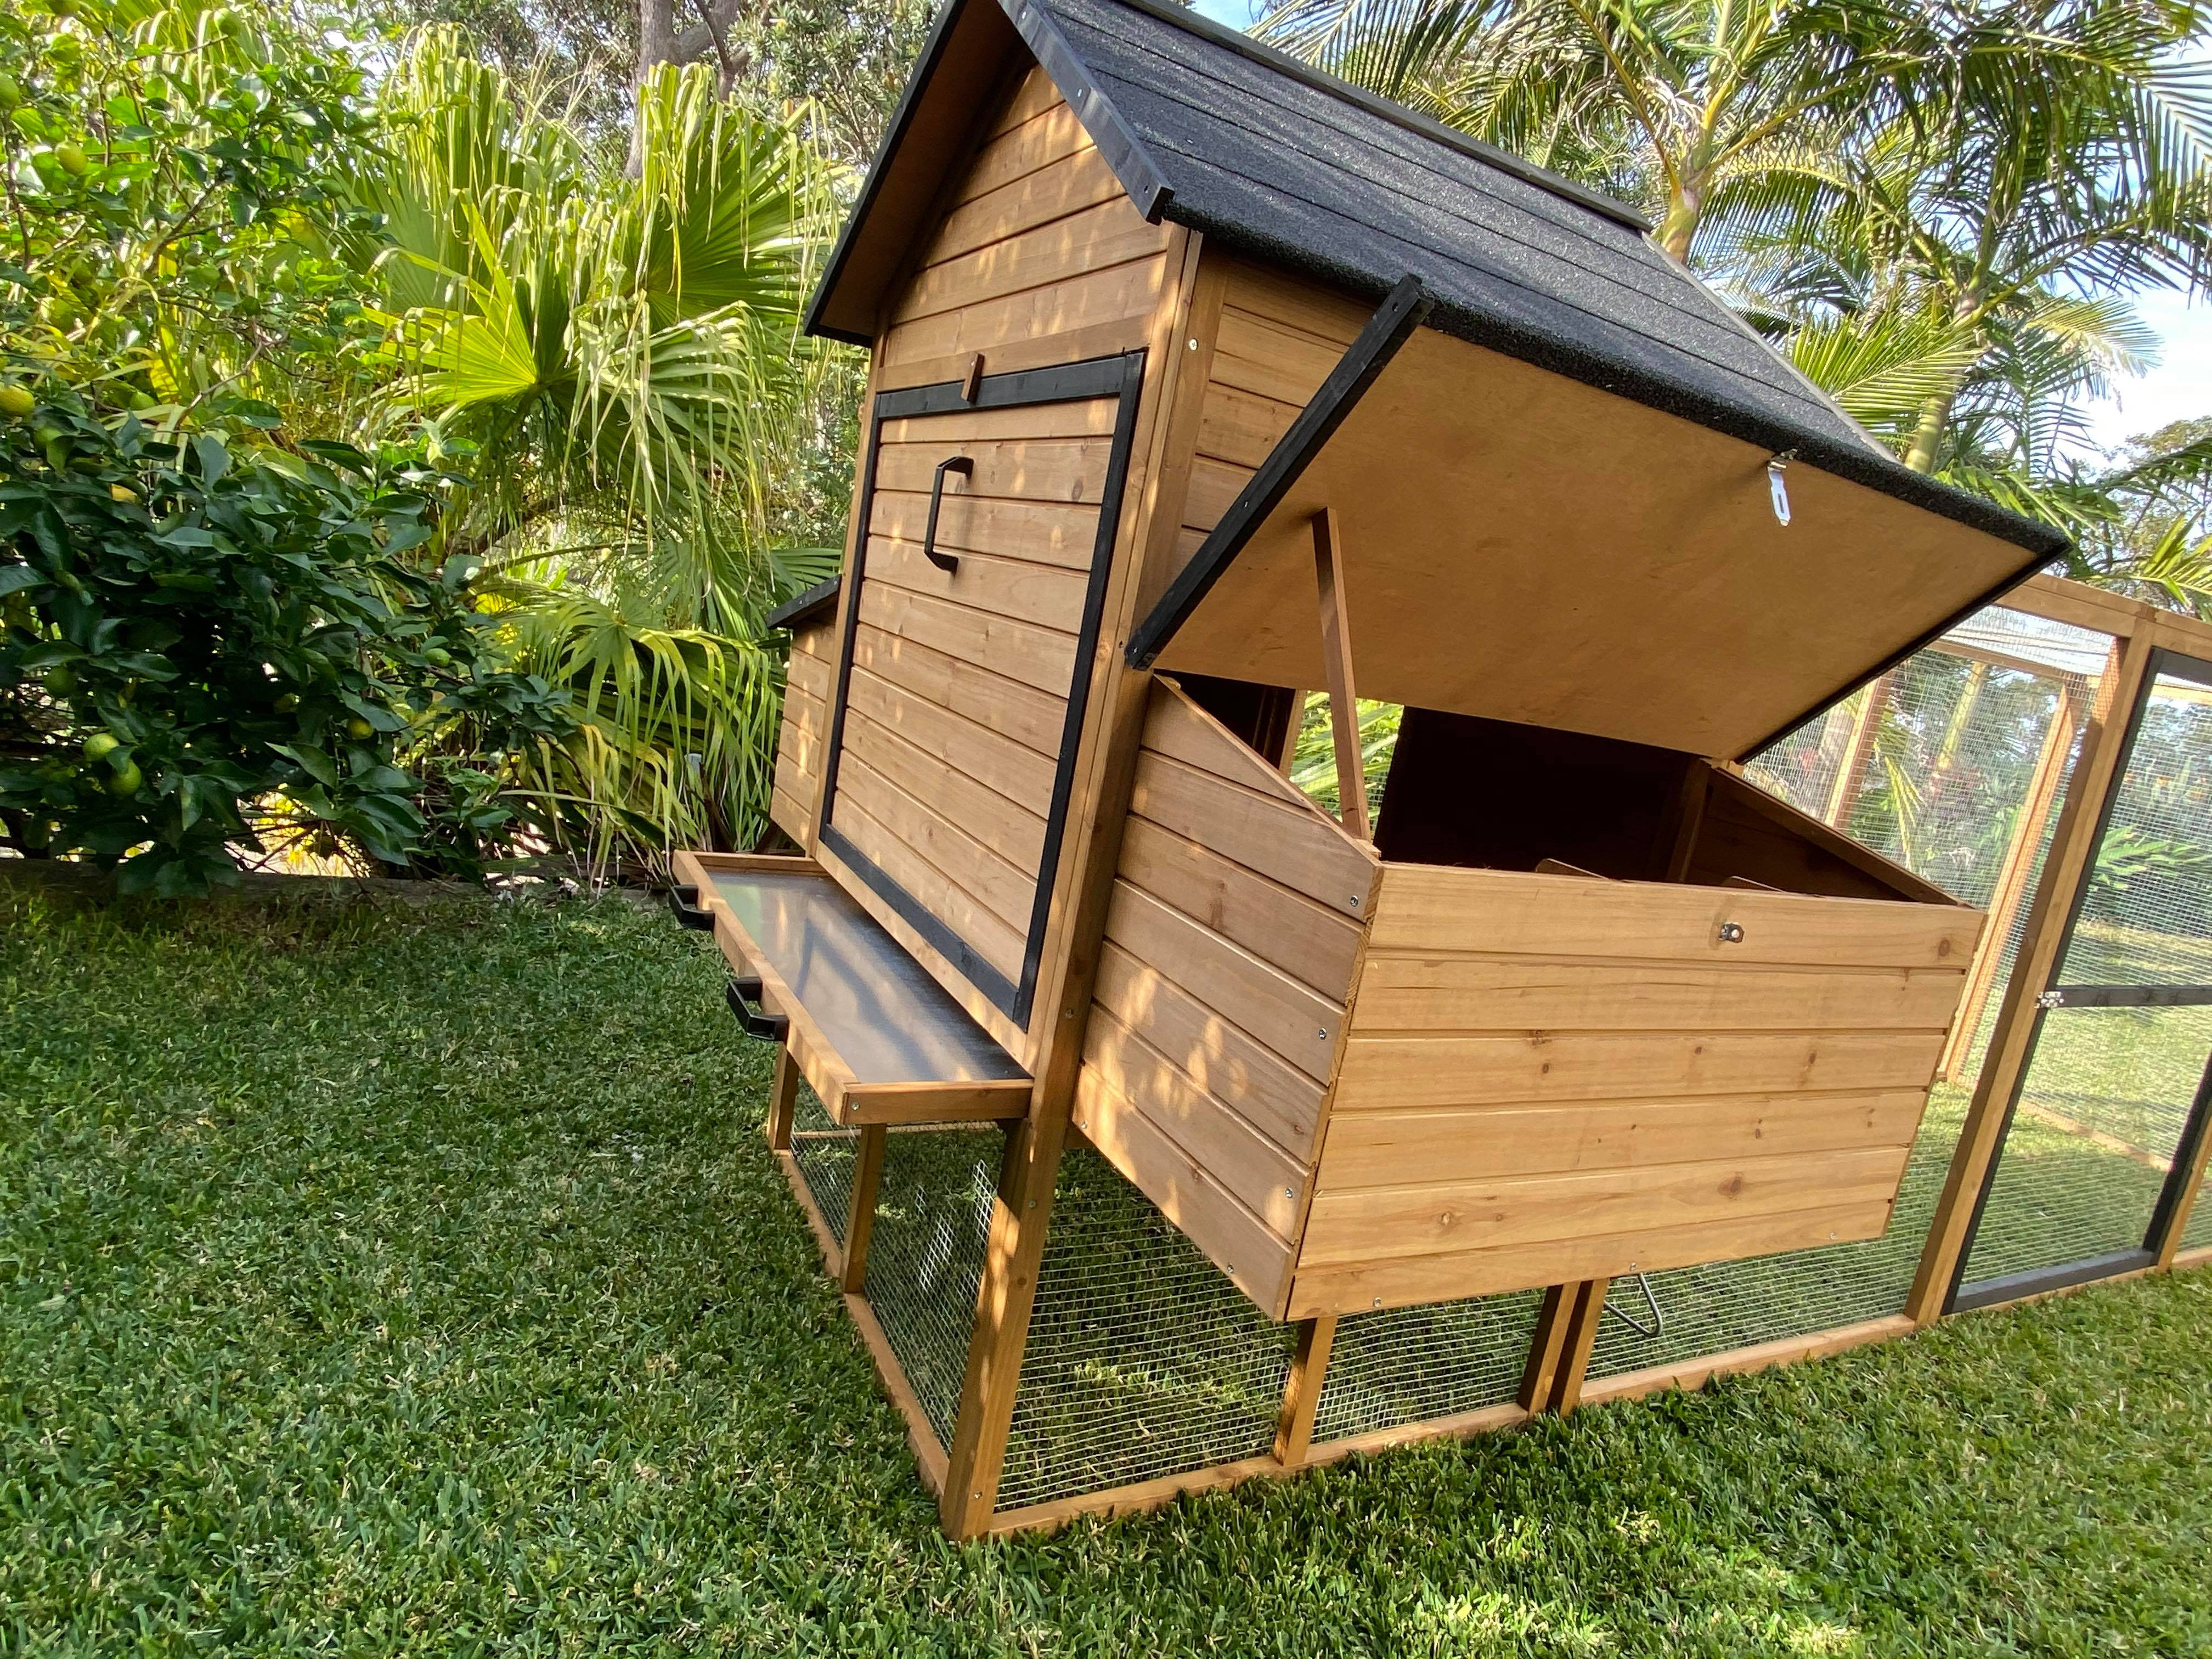 Cabana Chicken Coop with open nesting box gallery image